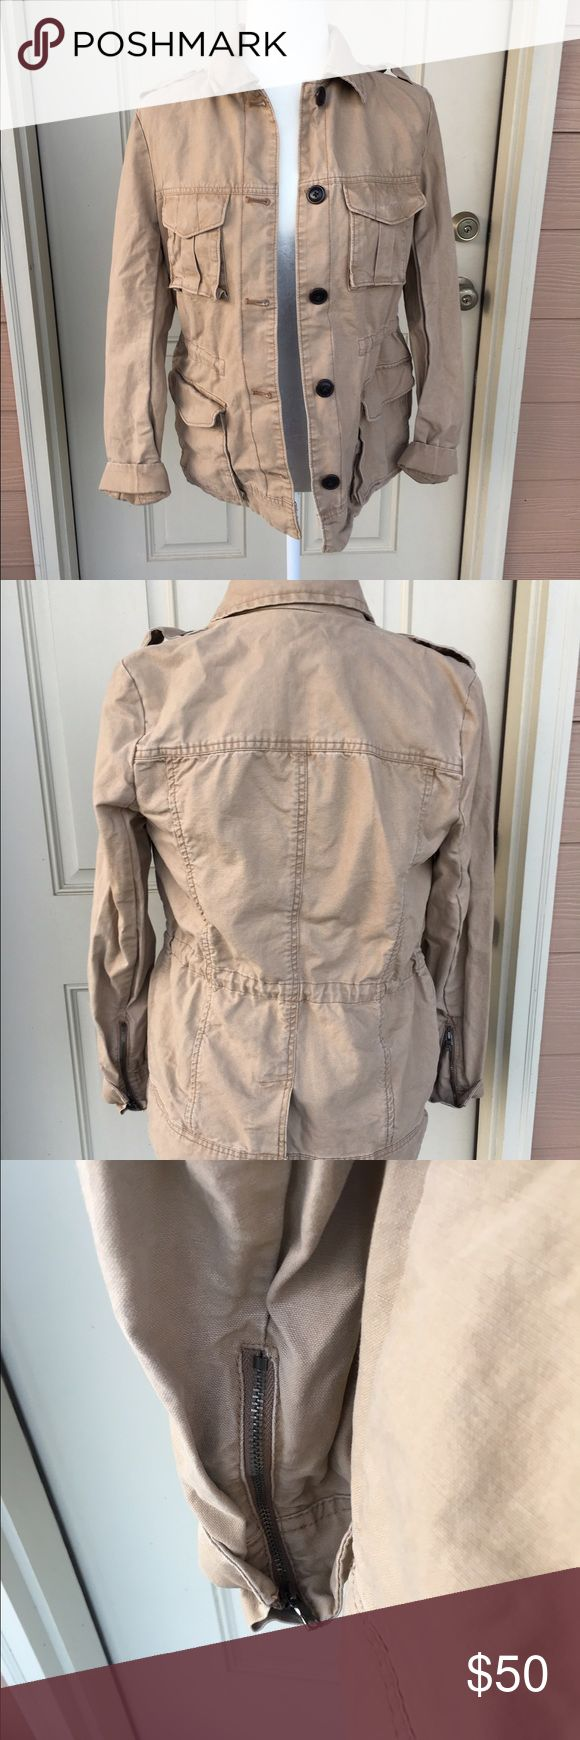 GAP Coat NWOT Really awesome GAP utility Coat! Never worn it was too small on me. Perfect condition! From a smoke-free home :) GAP Jackets & Coats Utility Jackets